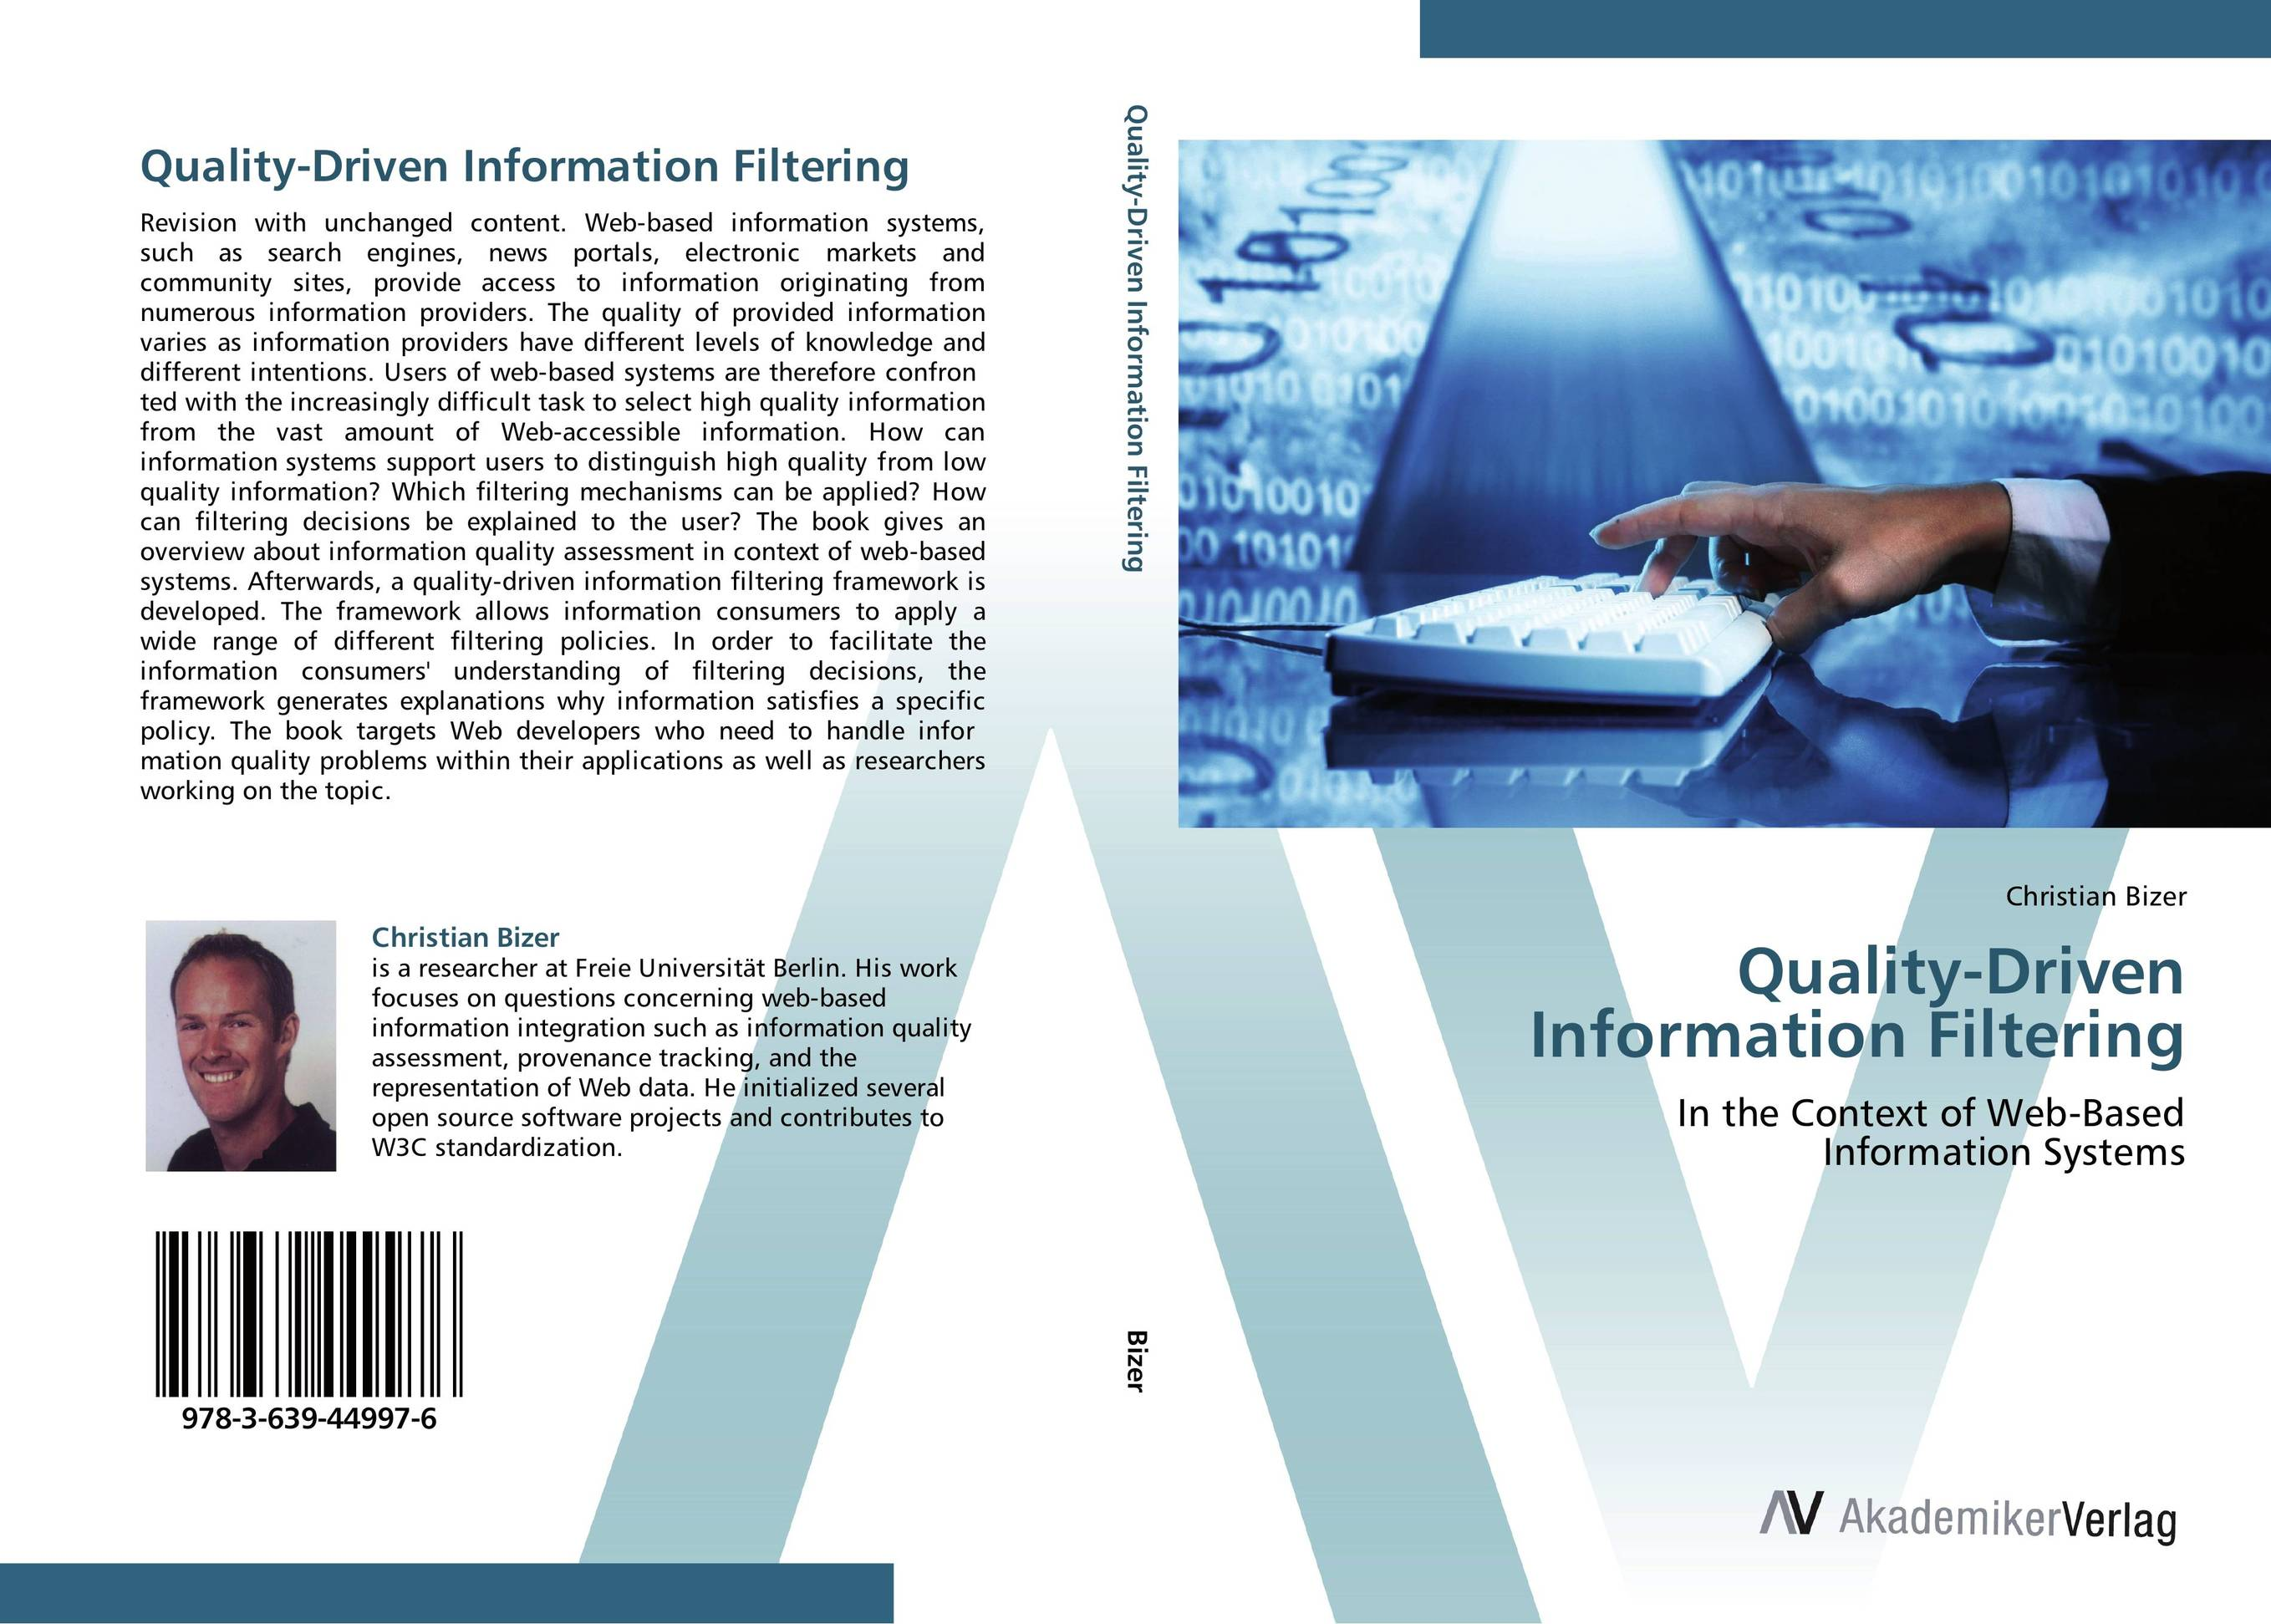 Quality-Driven Information Filtering driven to distraction